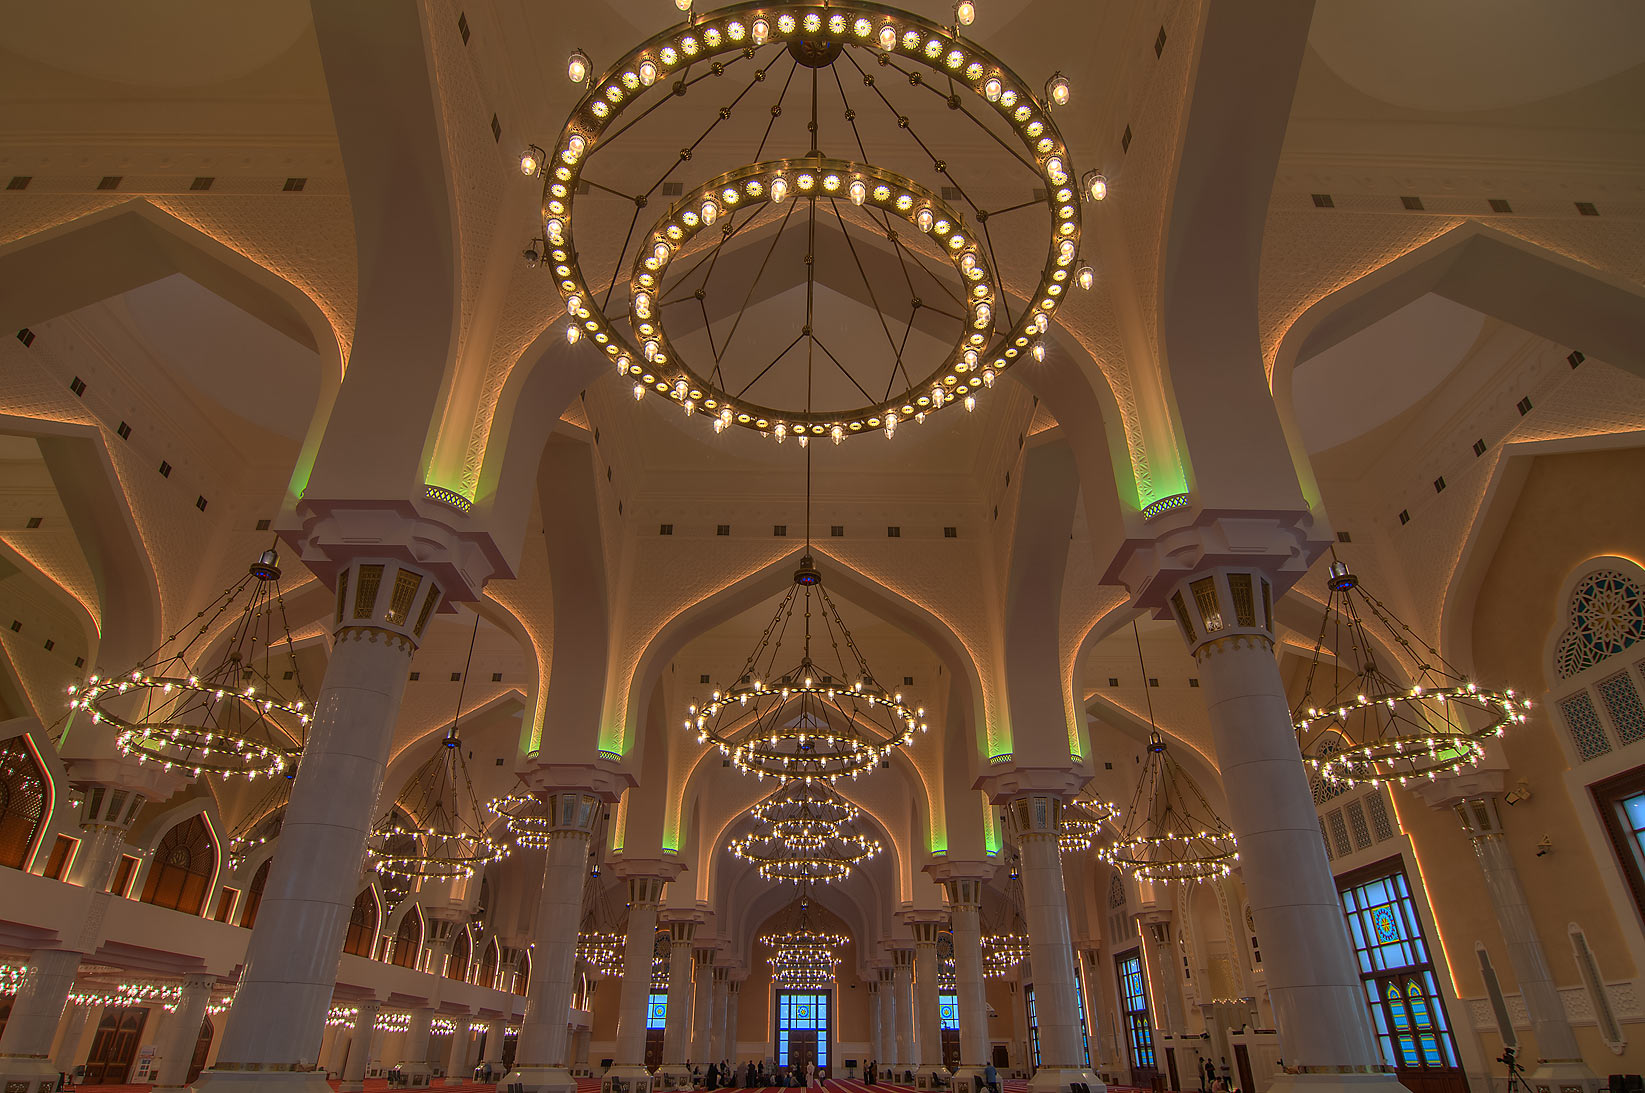 Domed ceiling inside State Mosque (Sheikh Muhammad Ibn Abdul Wahhab Mosque). Doha, Qatar